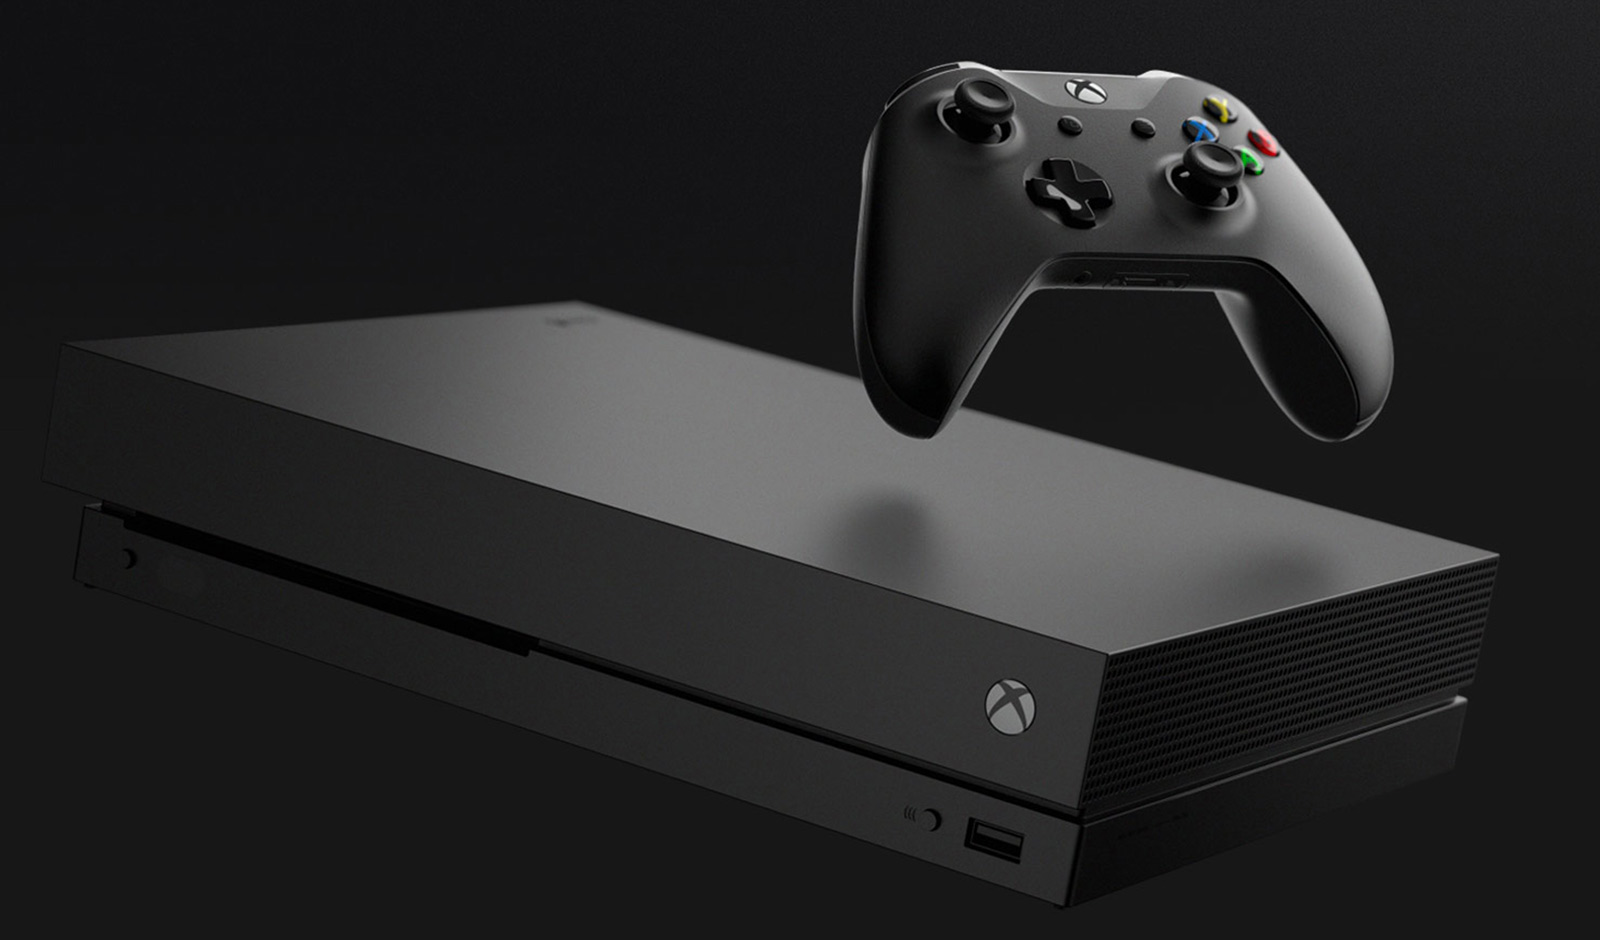 les meilleurs disques dur externes pour xbox one en 2019. Black Bedroom Furniture Sets. Home Design Ideas